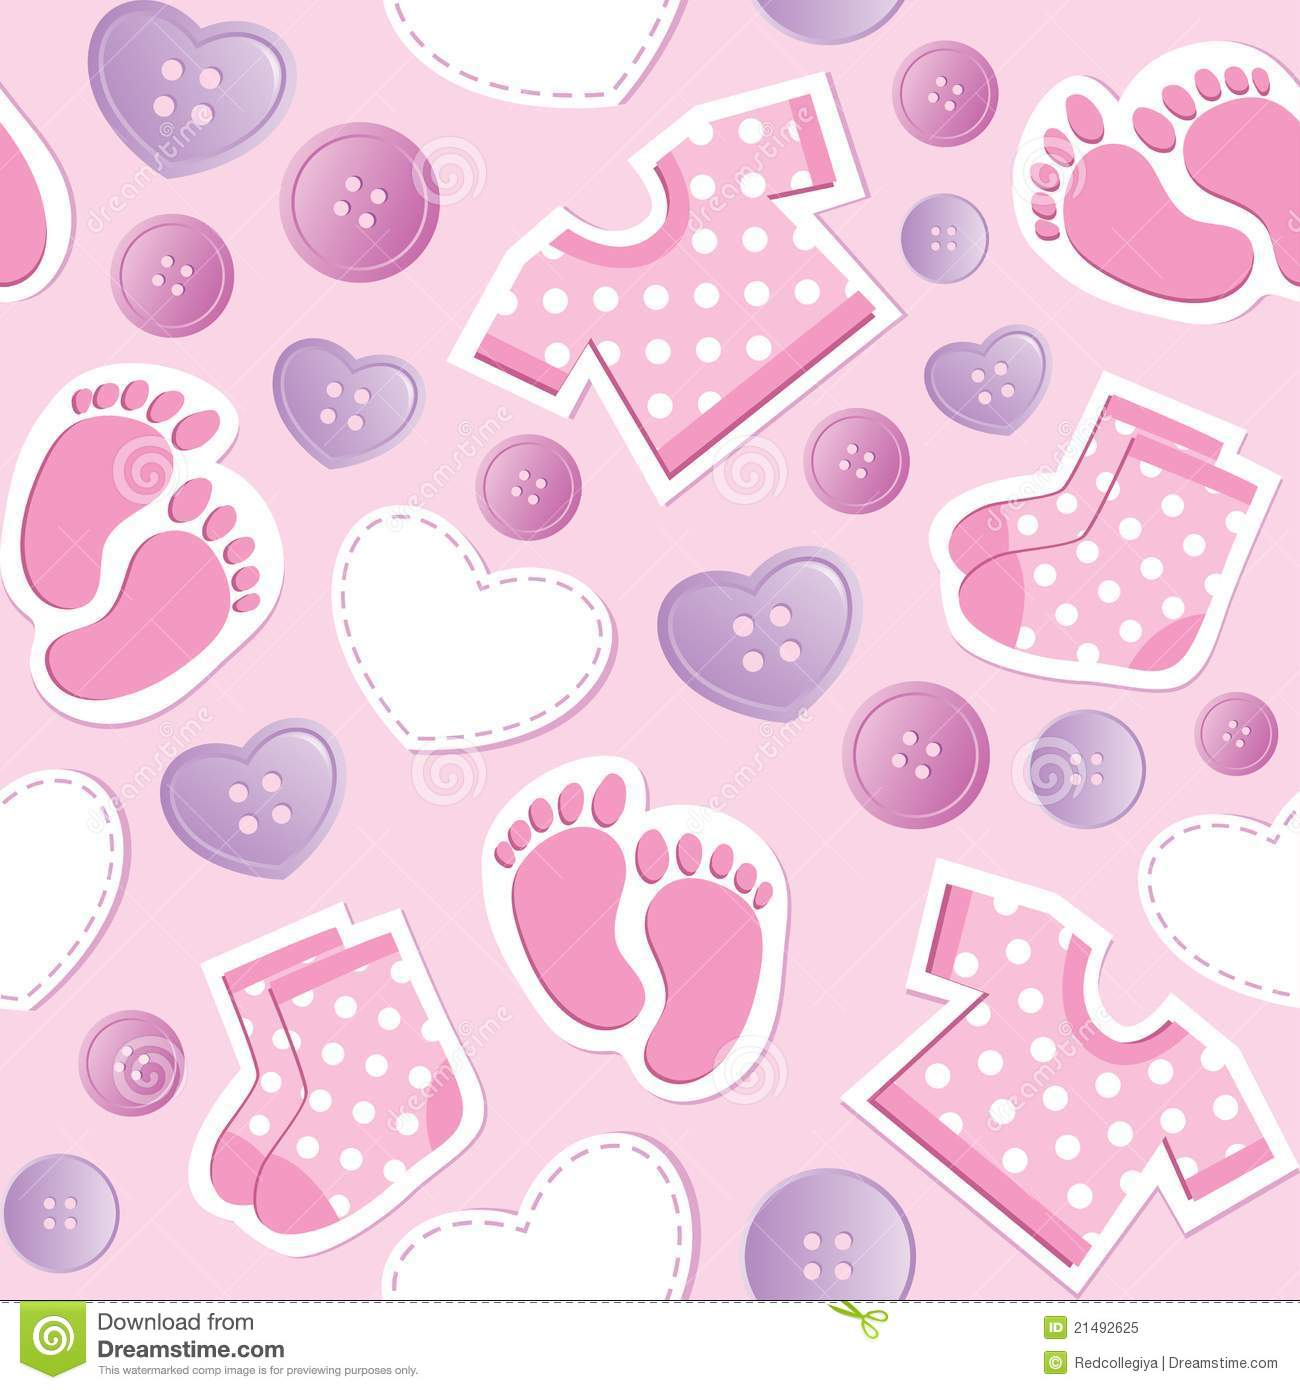 Baby Girl Wallpaper Borders Pink And Purple Baby Pink Seamless Pattern Royalty Free Stock Photo